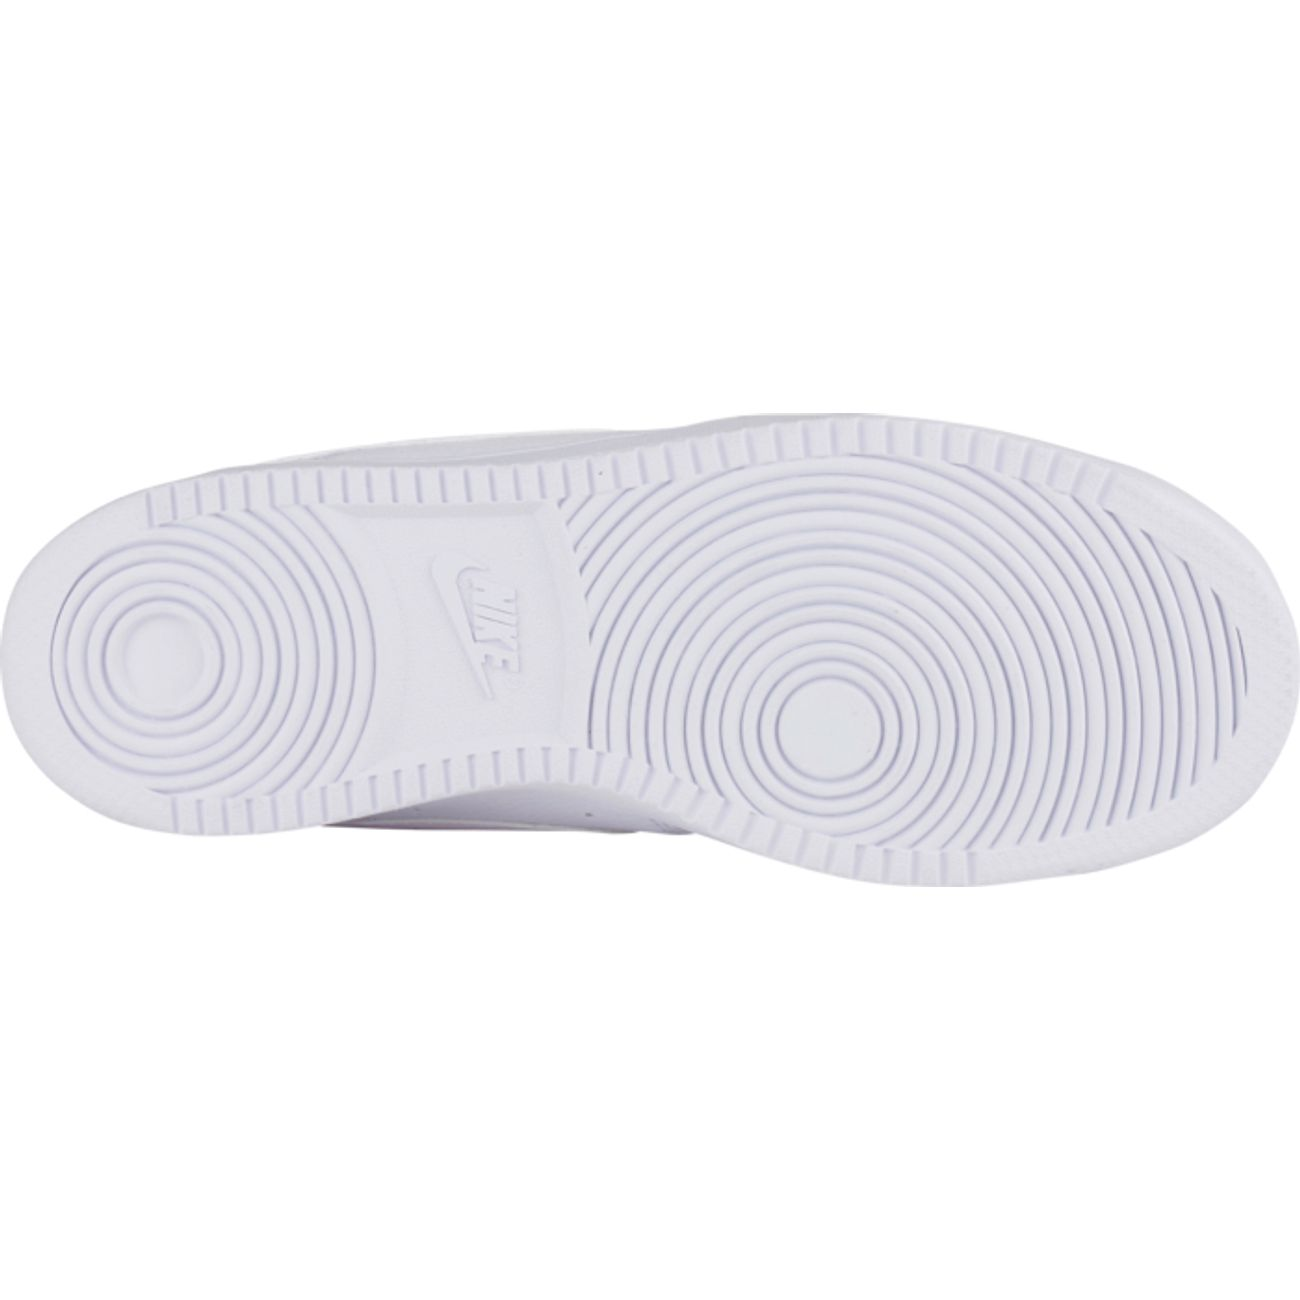 CHAUSSURES BASSES Loisirs homme NIKE COURT VISION LO